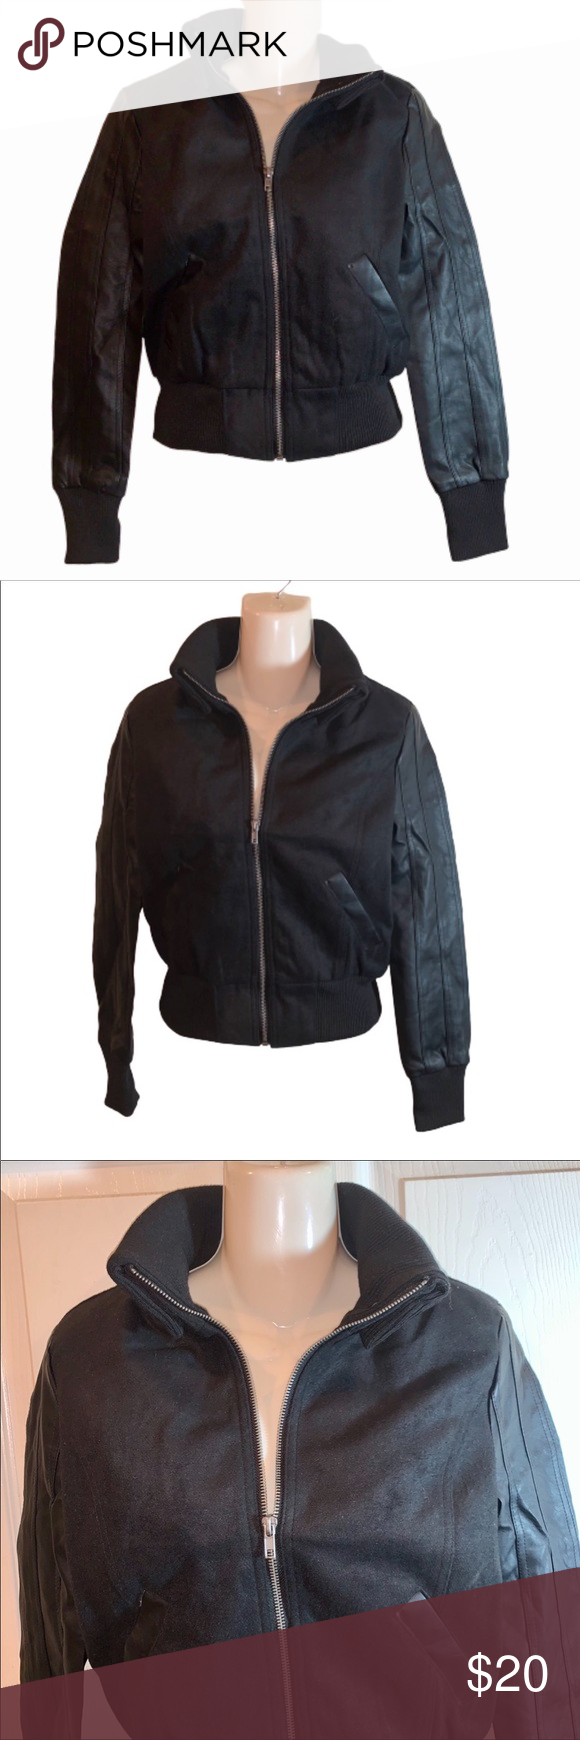 Nwt Faux Leather And Wool Bomber Jacket Nwt Ambiance Combo Jacket Faux Leather And Wool Junior Size Available In Size Wool Bomber Jacket Jackets Bomber Jacket [ 1740 x 580 Pixel ]